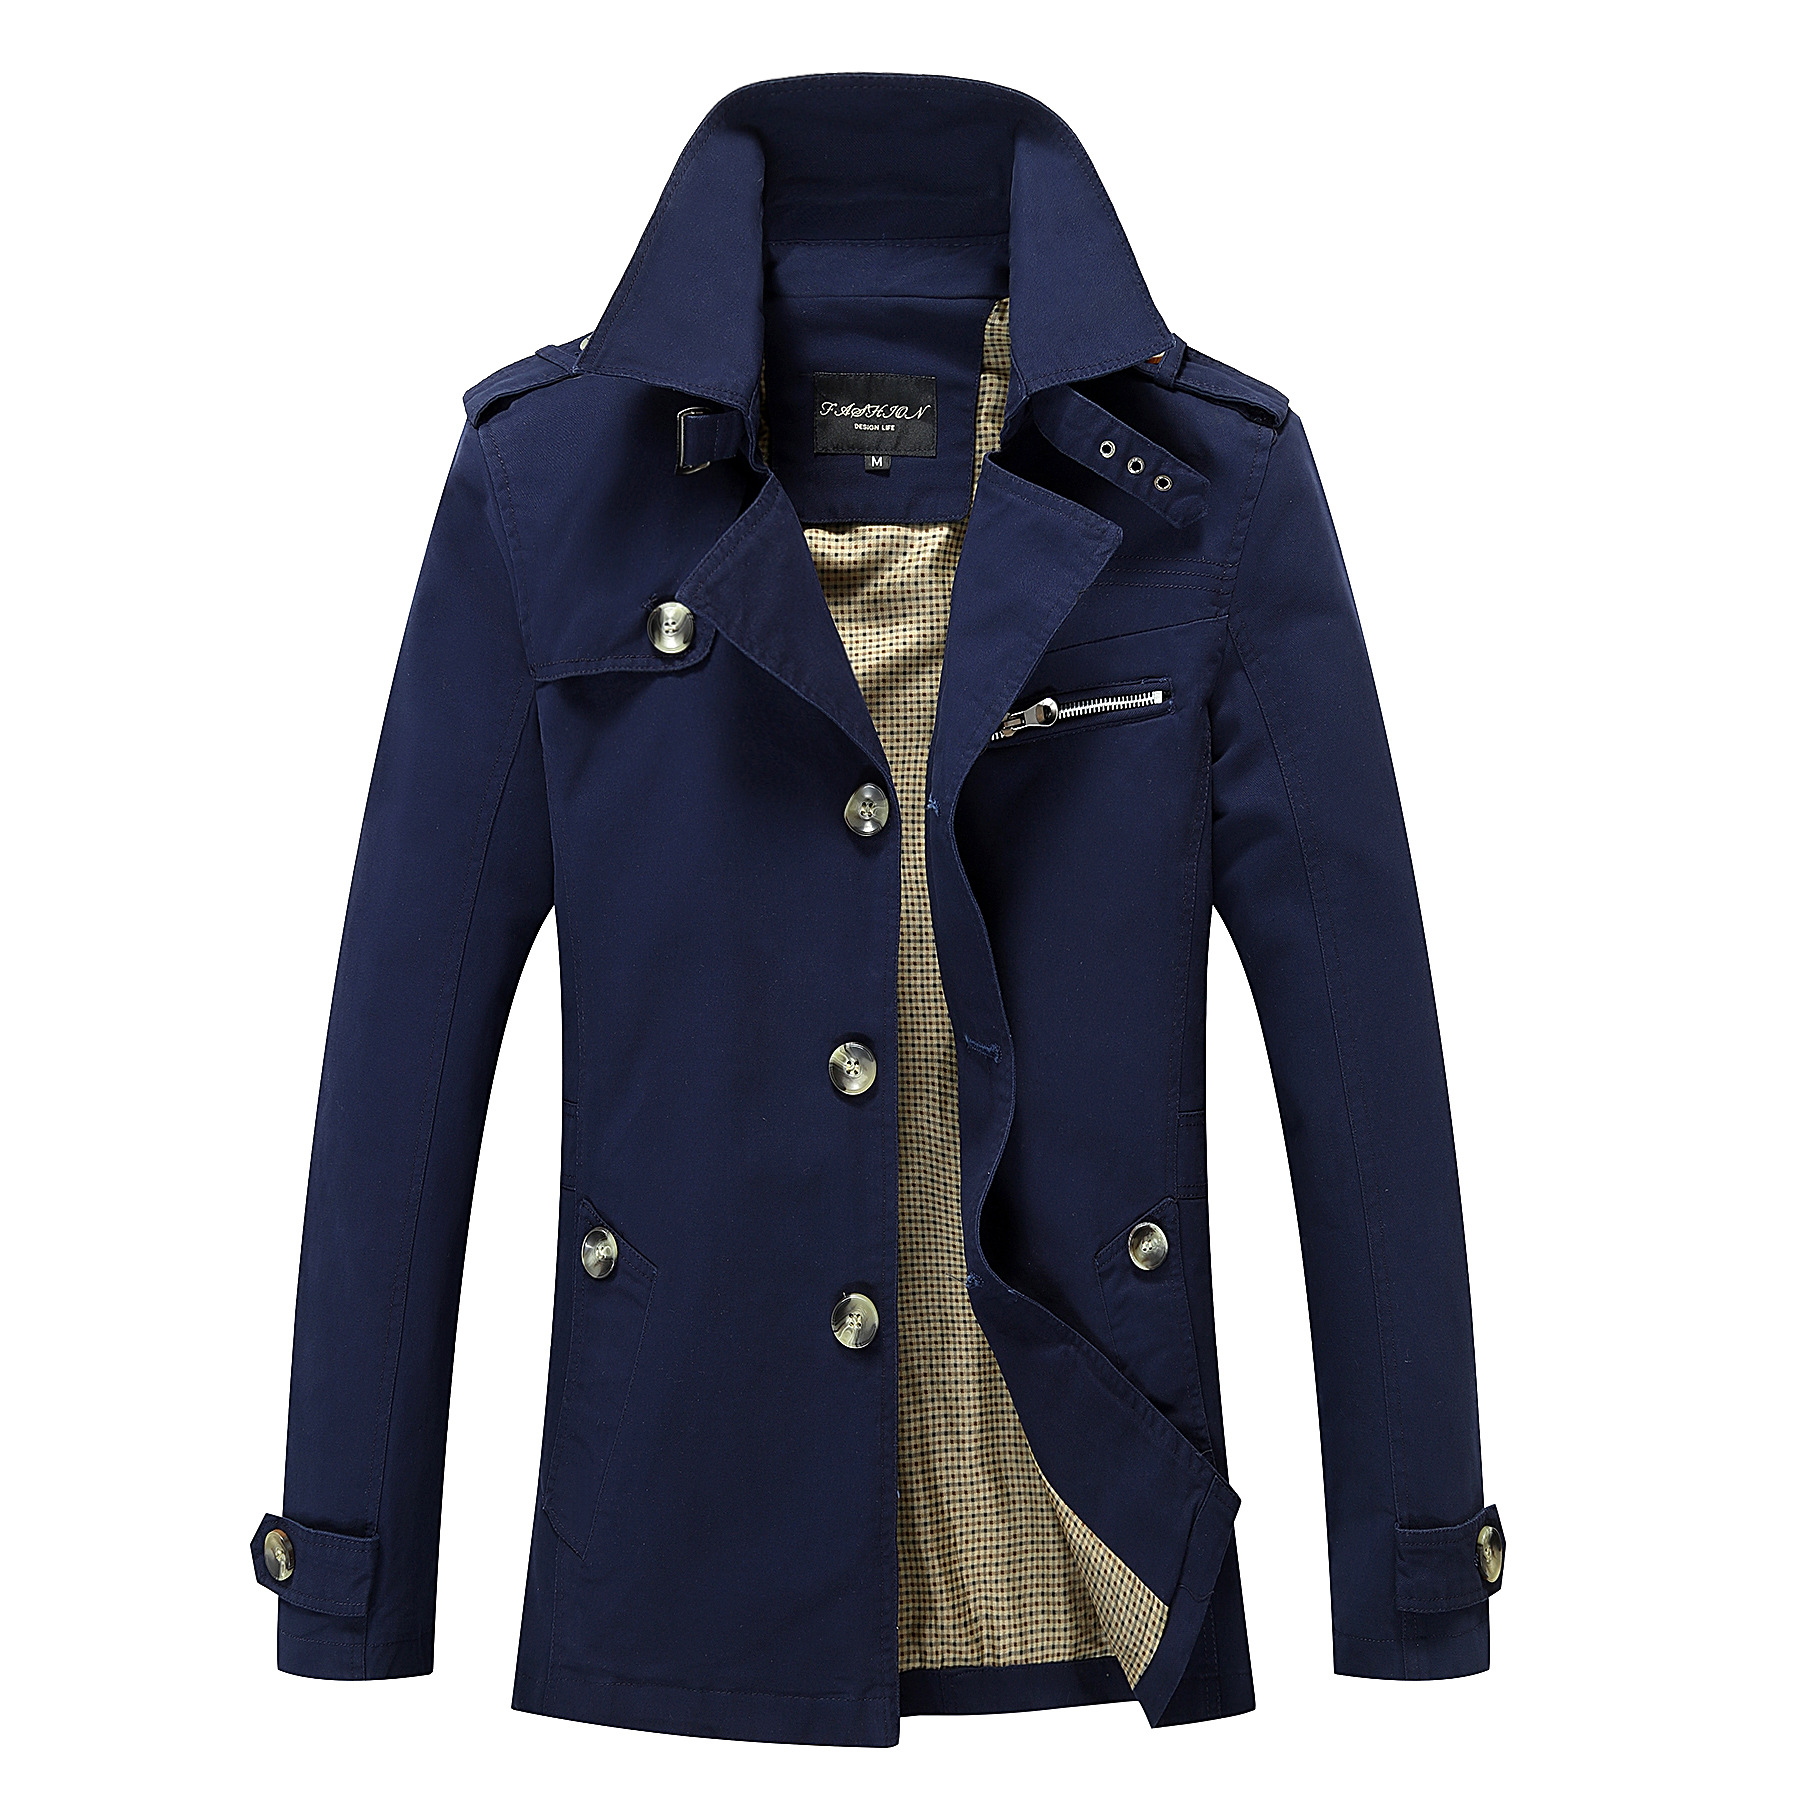 Spring Autumn Men's Long Thin Trench Coats Man Cotton Smart Casual Slim Fit Design Office Jackets Overcoat Plus Size M-5XL